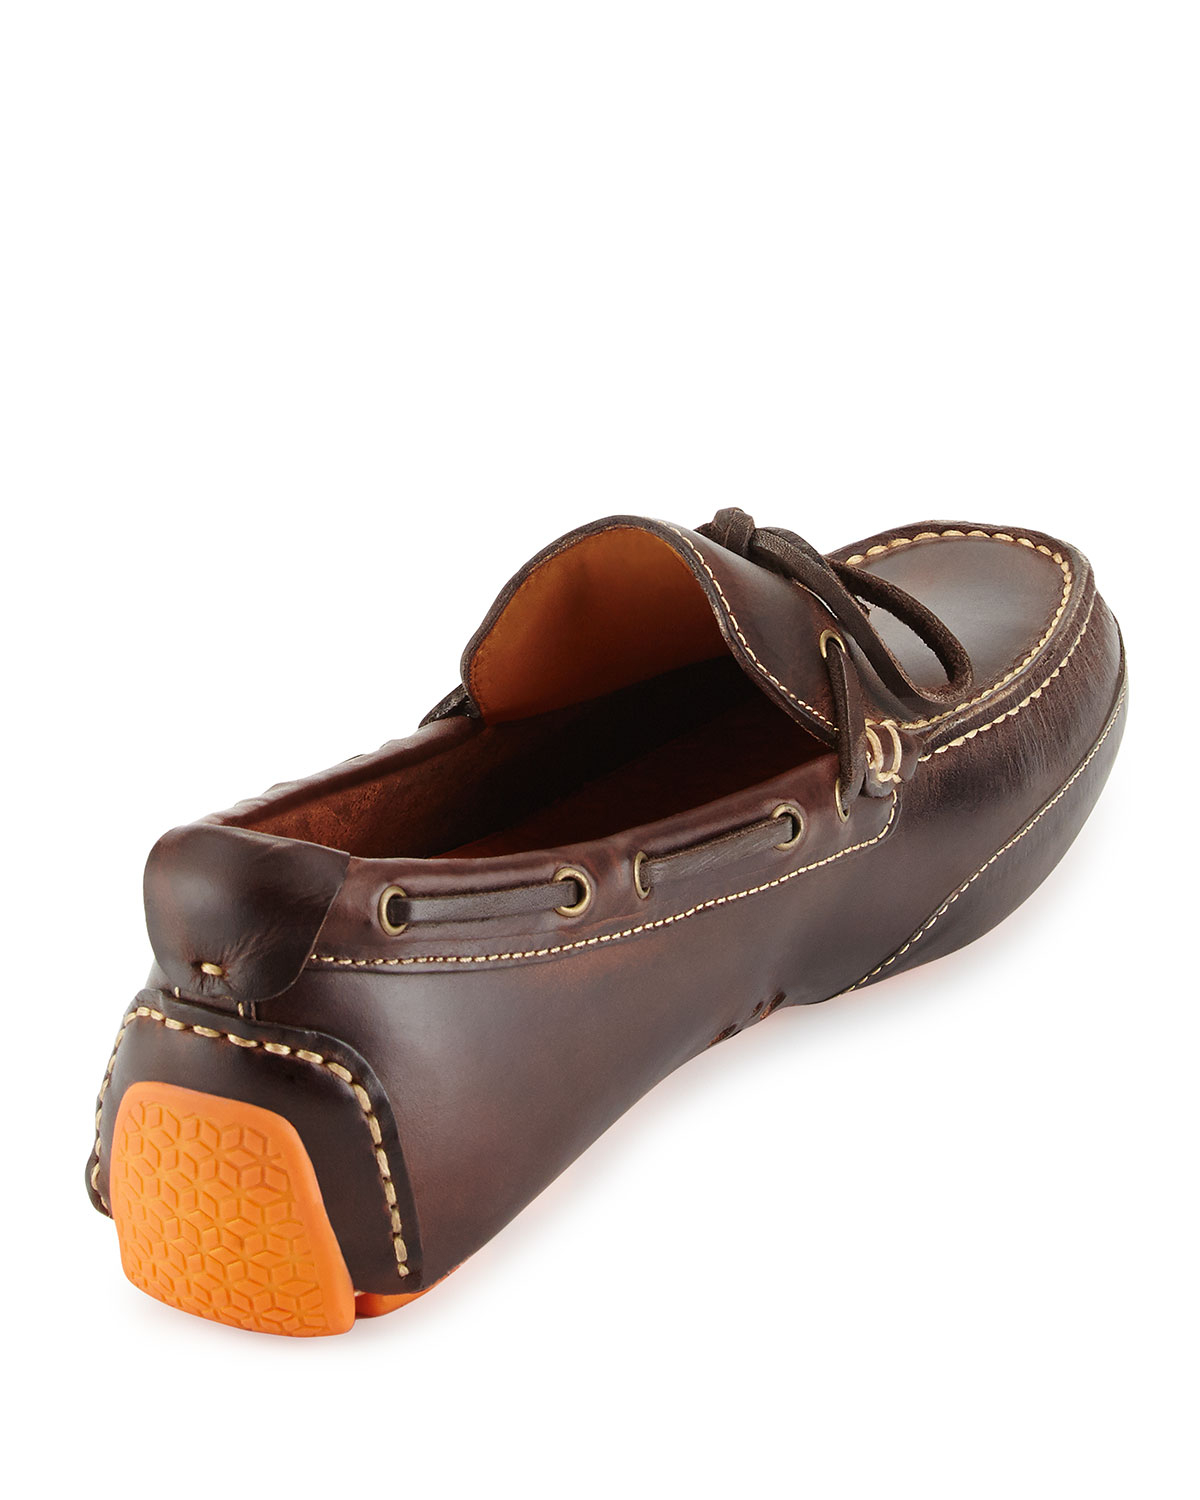 c4a6851c63d Lyst - Cole Haan Motogrand Leather Camp-Moc Loafer in Brown for Men